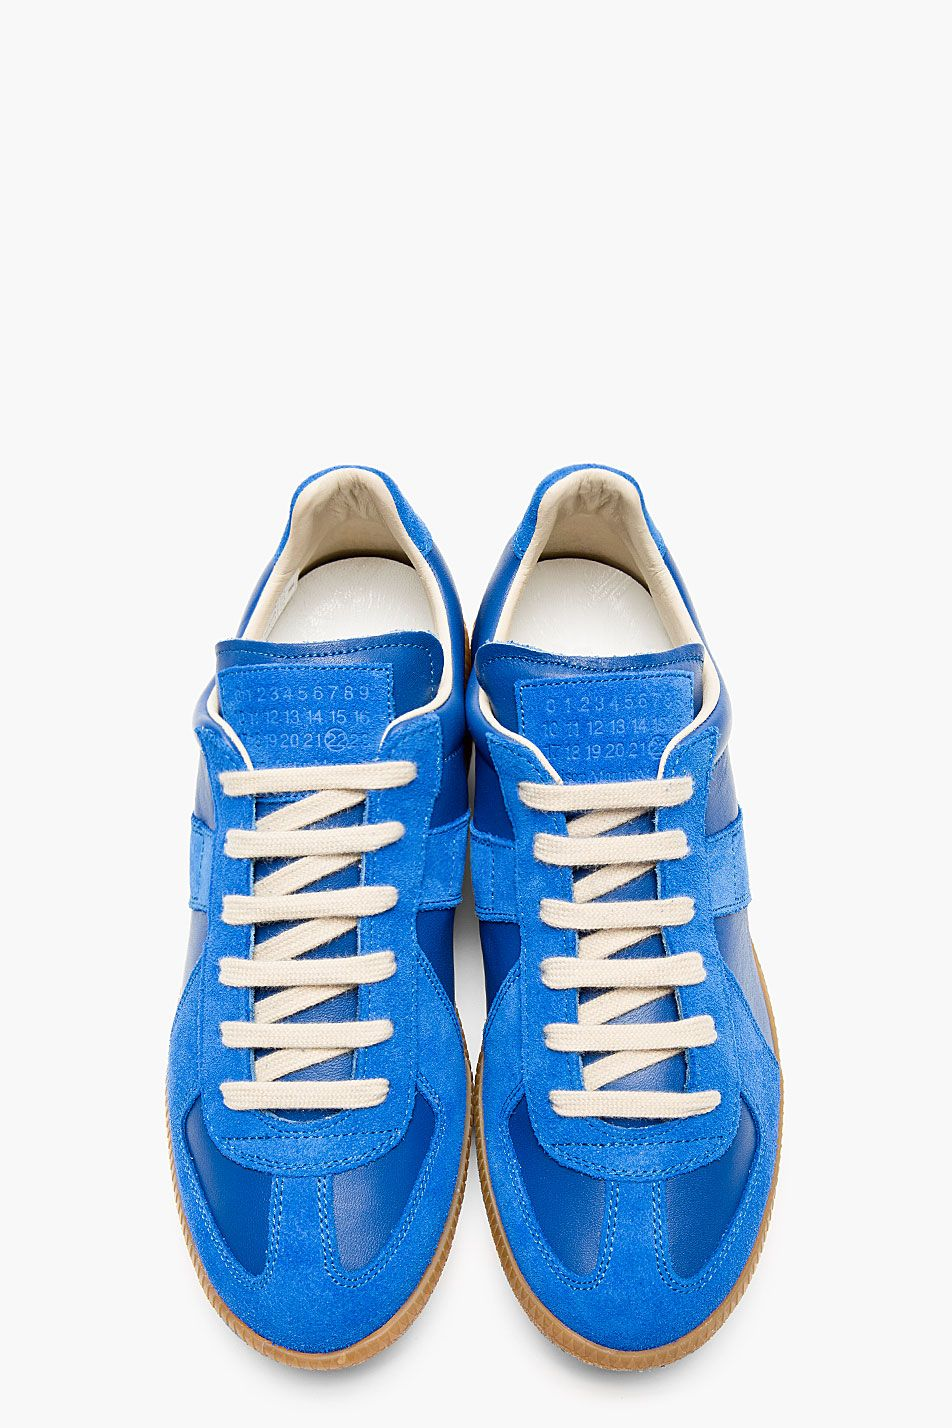 new styles f3d53 4ce4b MAISON MARTIN MARGIELA - Blue Leather   Suede Replica Sneakers